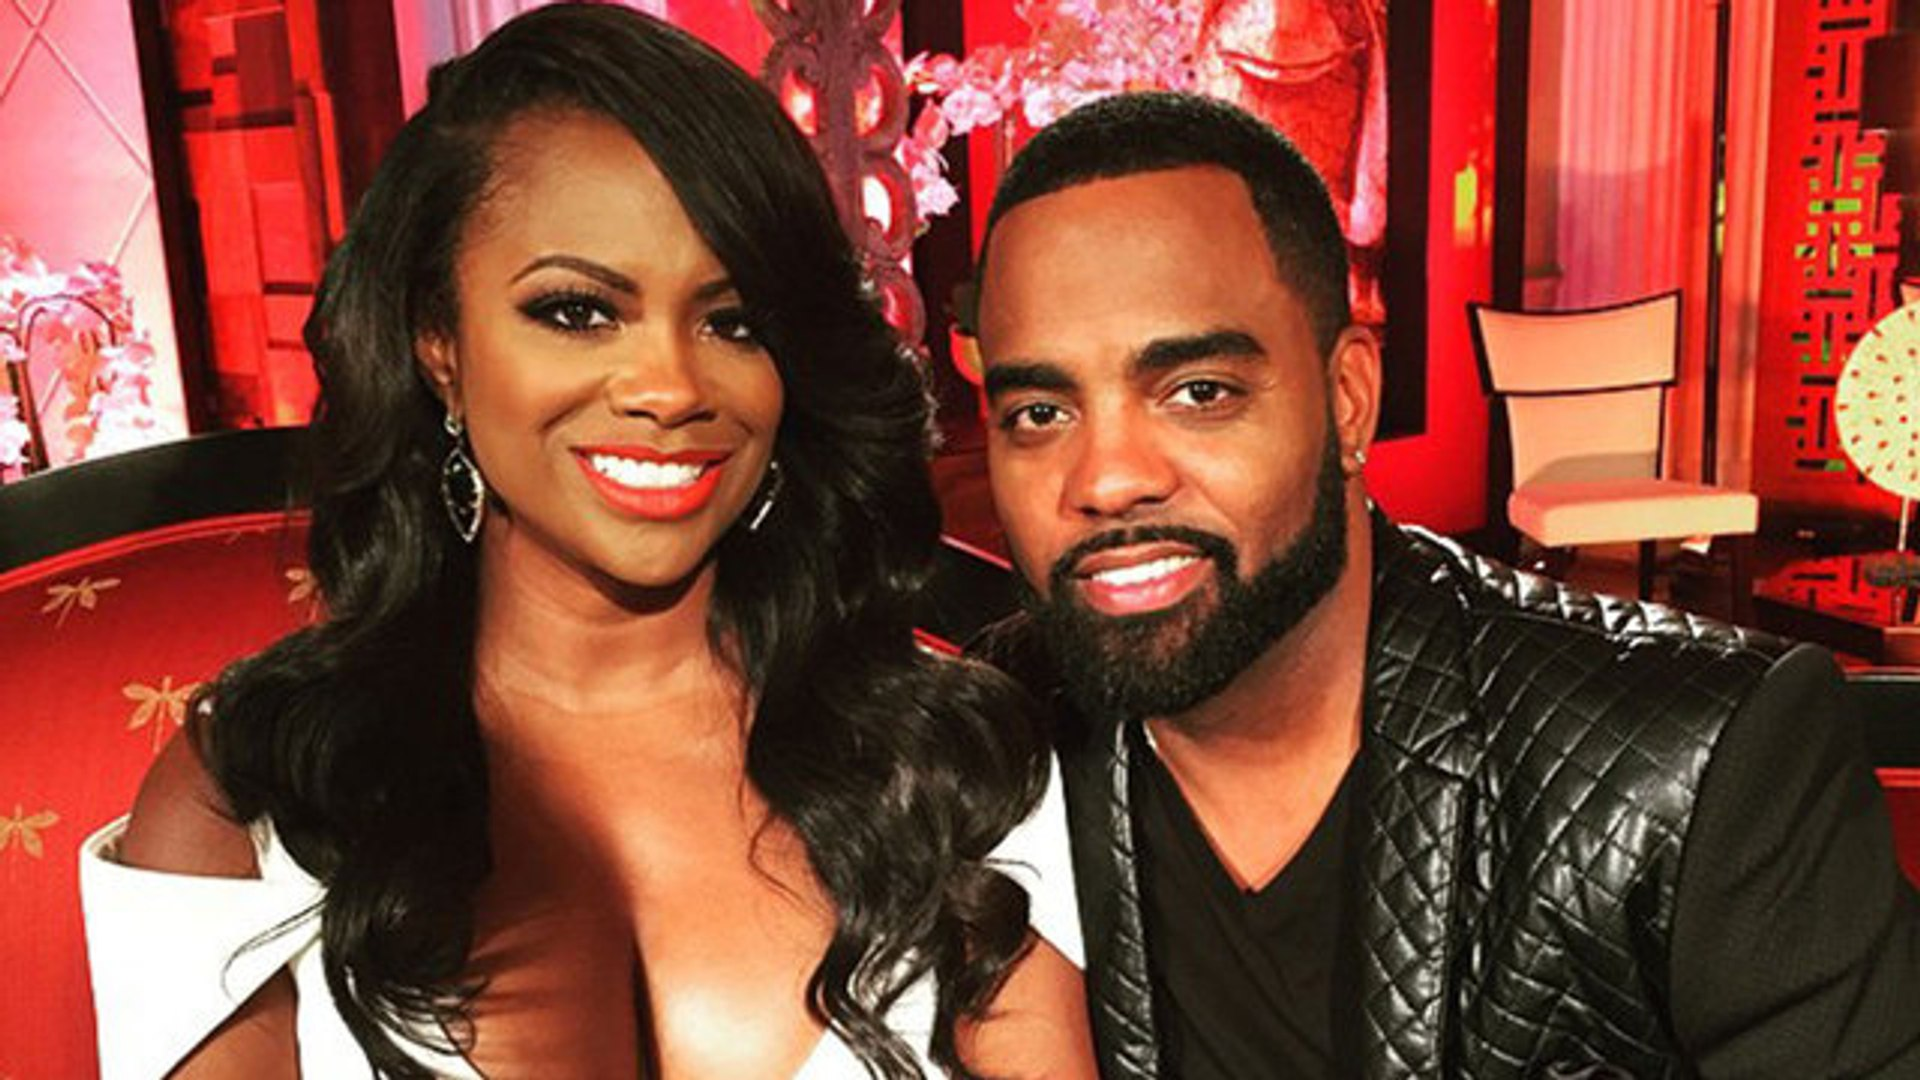 Kandi Burruss Will Make An Appearance During The 6th Annual Reality Television Awards Next Weekend